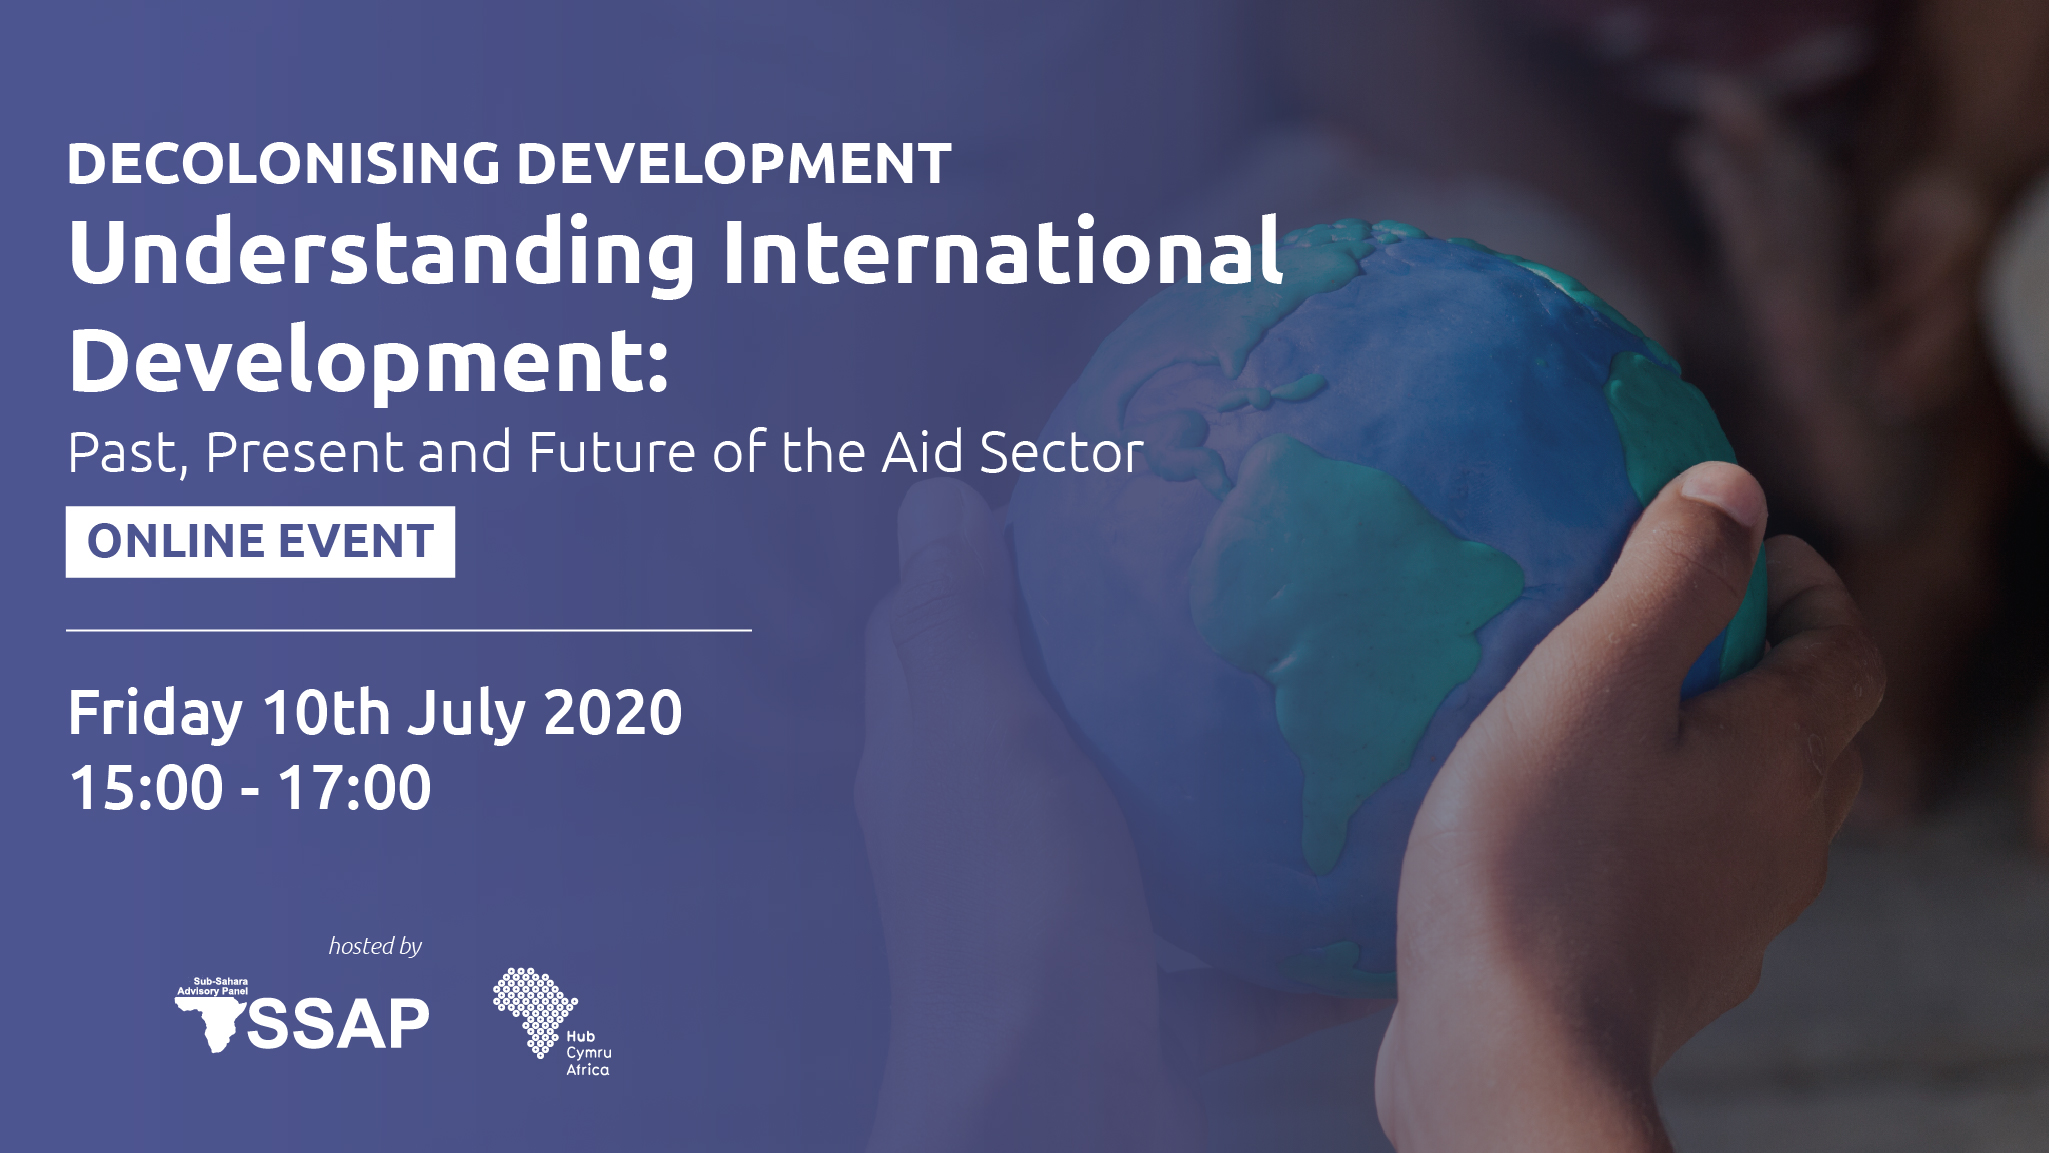 Understanding International Development: Past, Present and Future of the Aid Sector